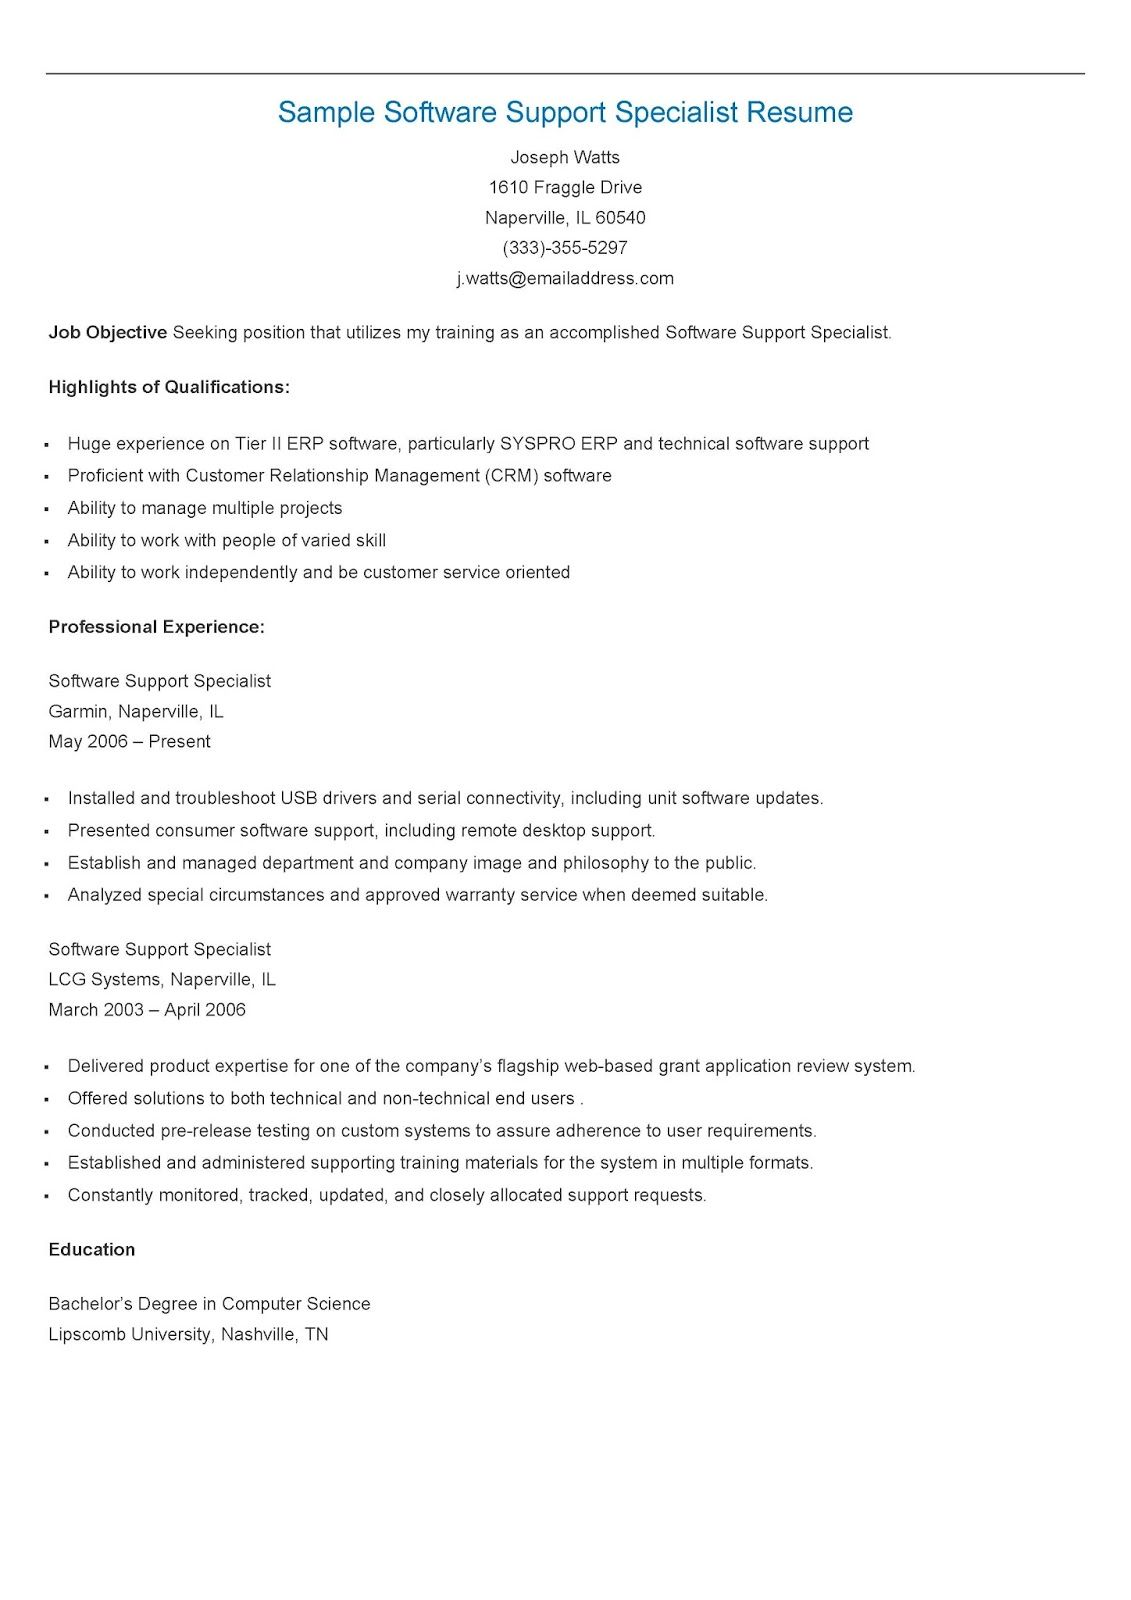 sample software support specialist resume resame resume